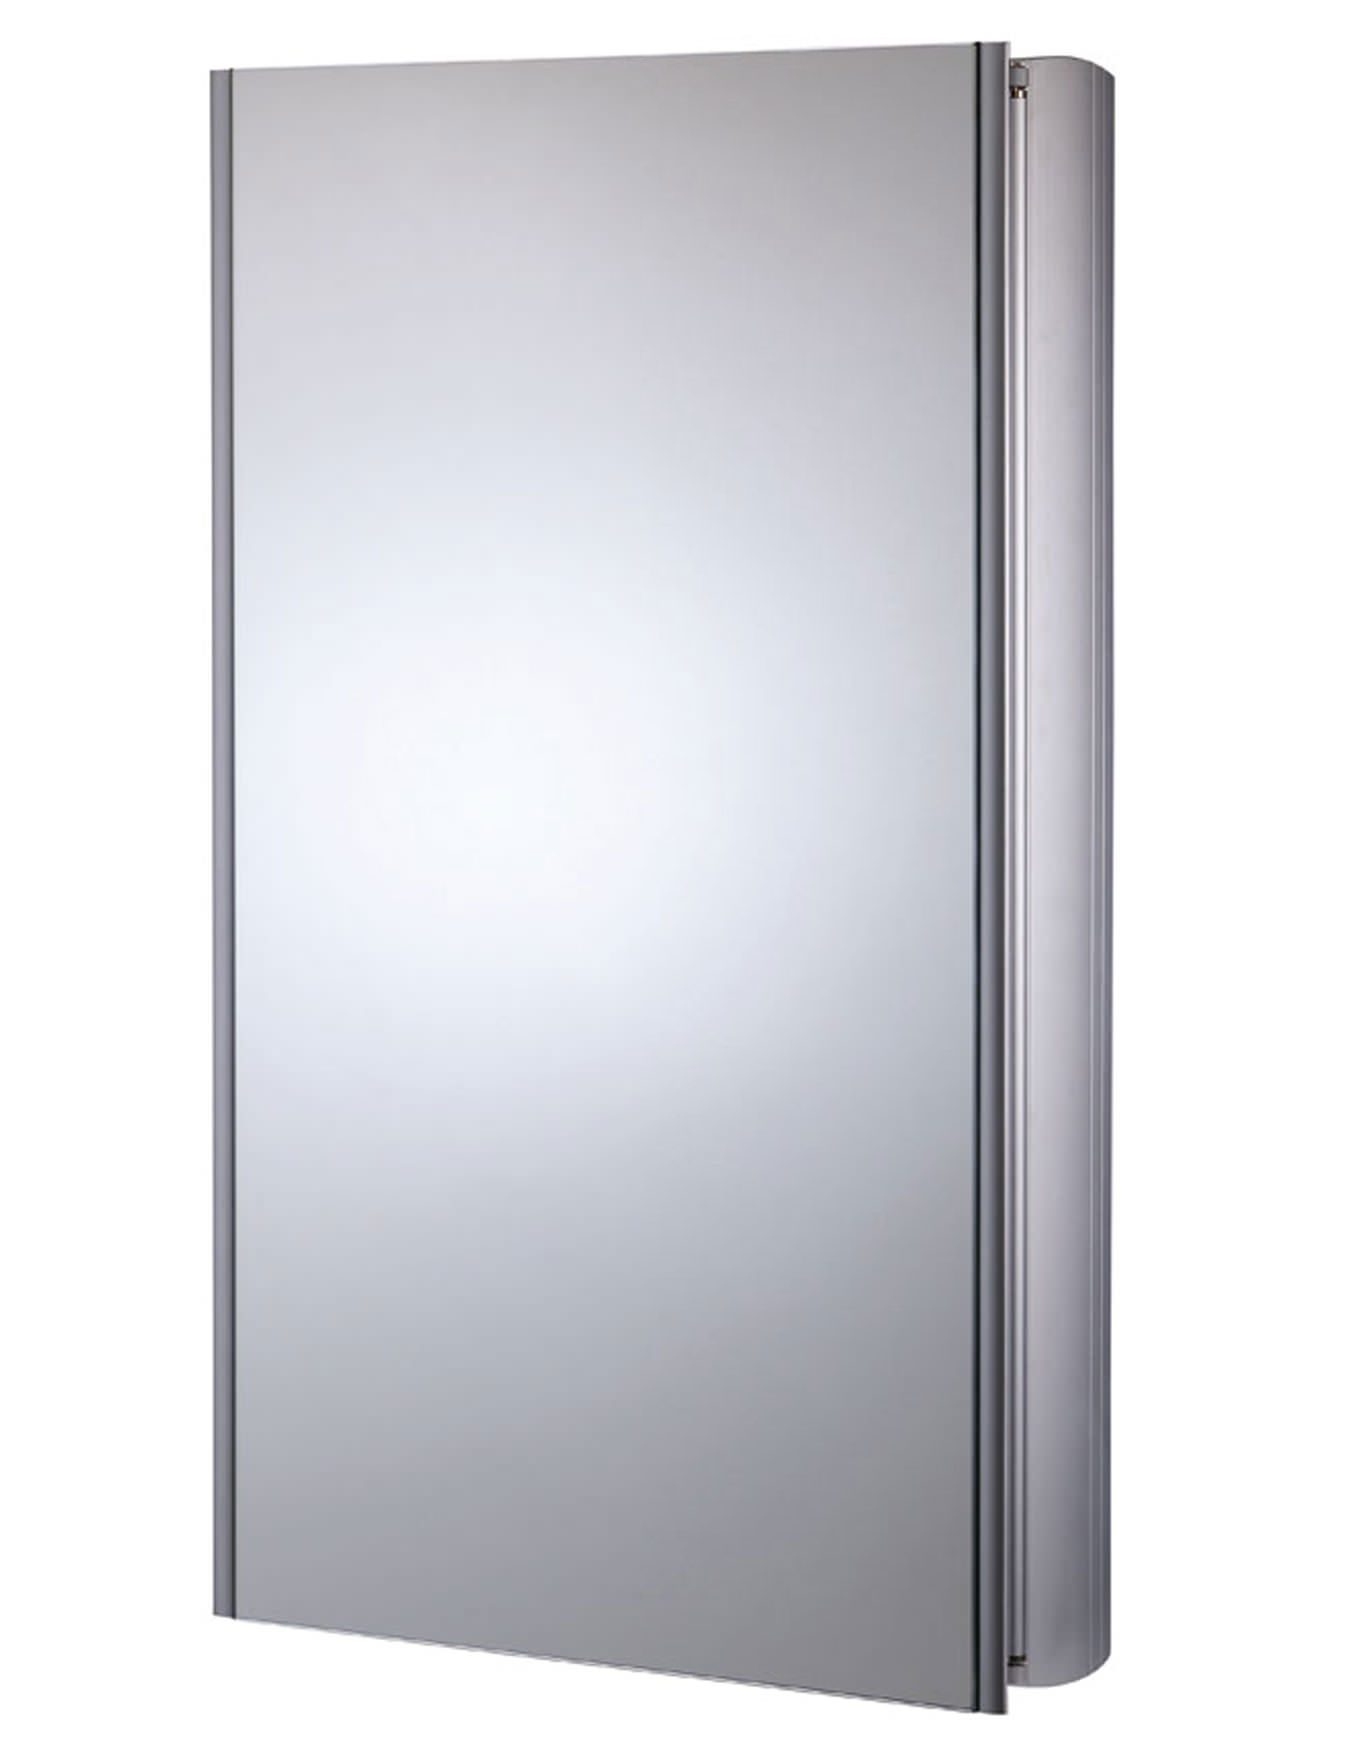 Mirrored Bathroom Cabinets Uk Shop For Bathroom Mirrored Cabinets At Qs Supplies